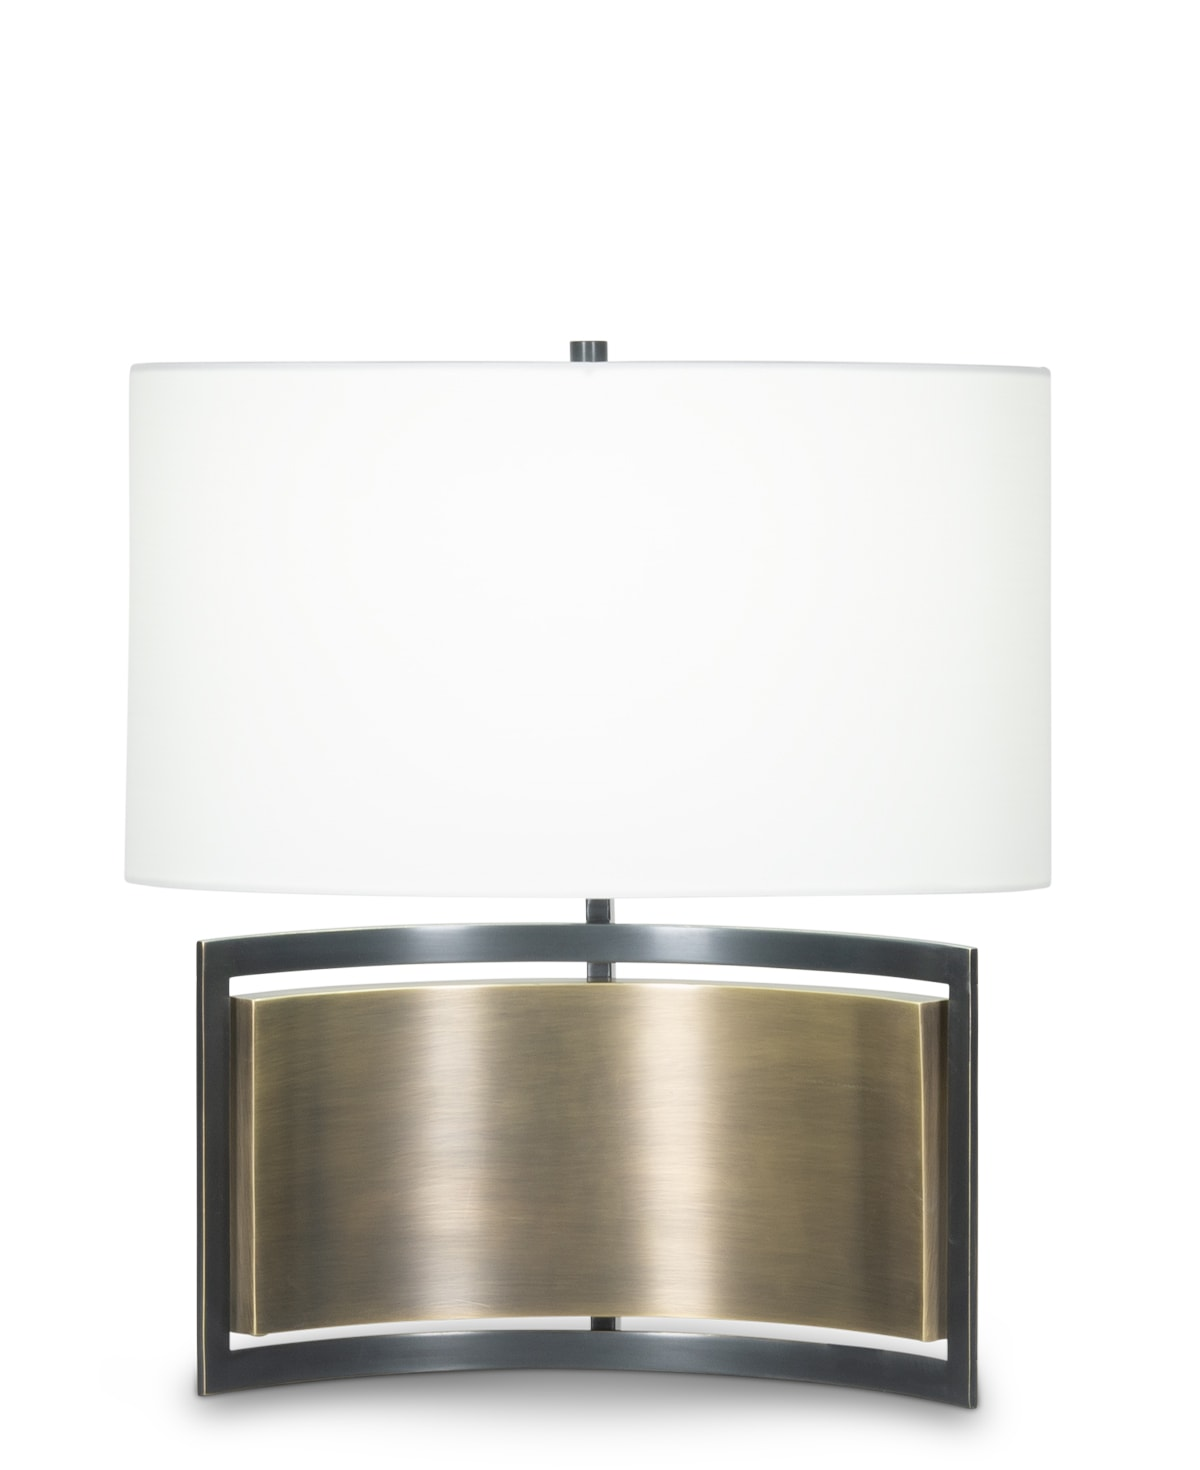 FlowDecor Ray Table Lamp in metal with antique brass & bronze finishes and off-white cotton oval shade (# 4435)